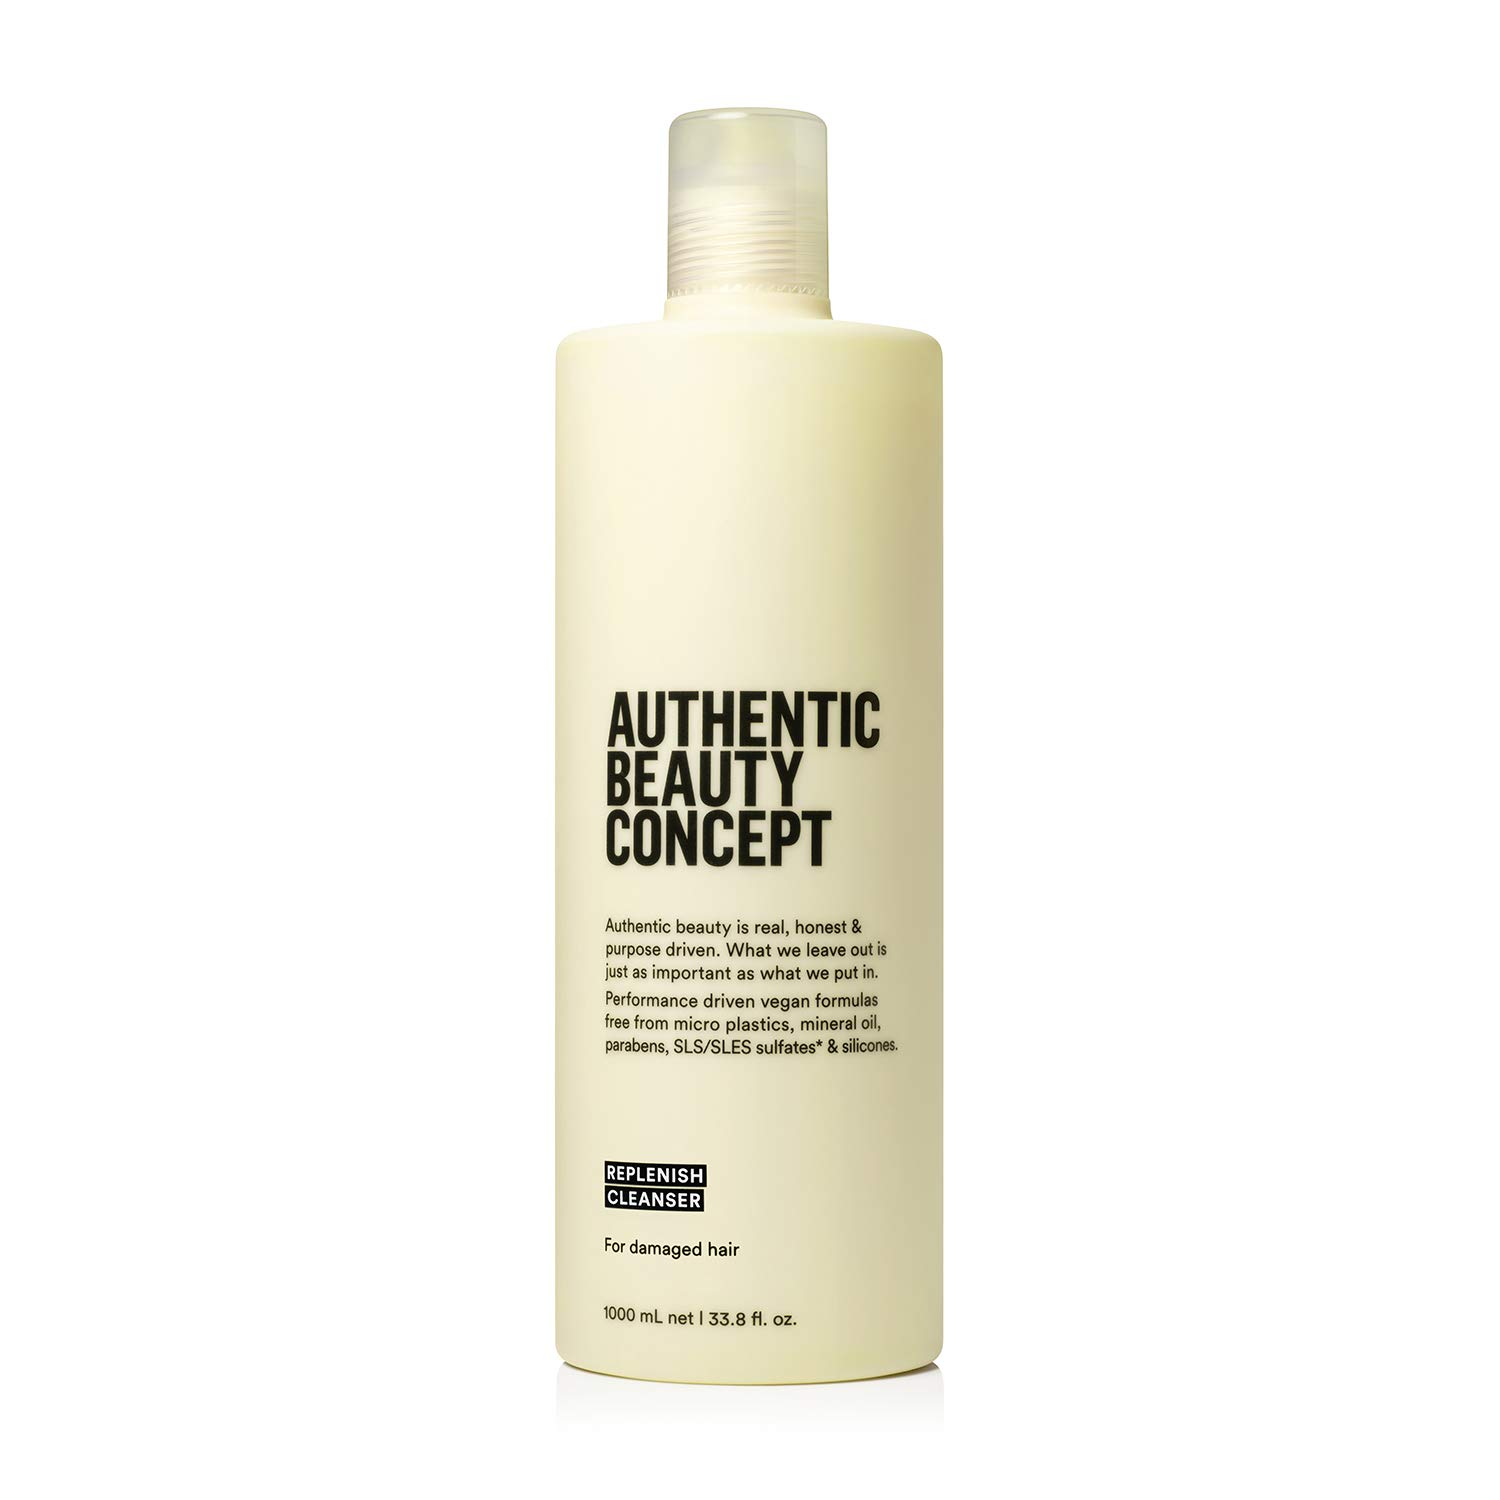 Authentic Beauty Concept Replenish Cleanser Shampoo Damaged National products Max 72% OFF